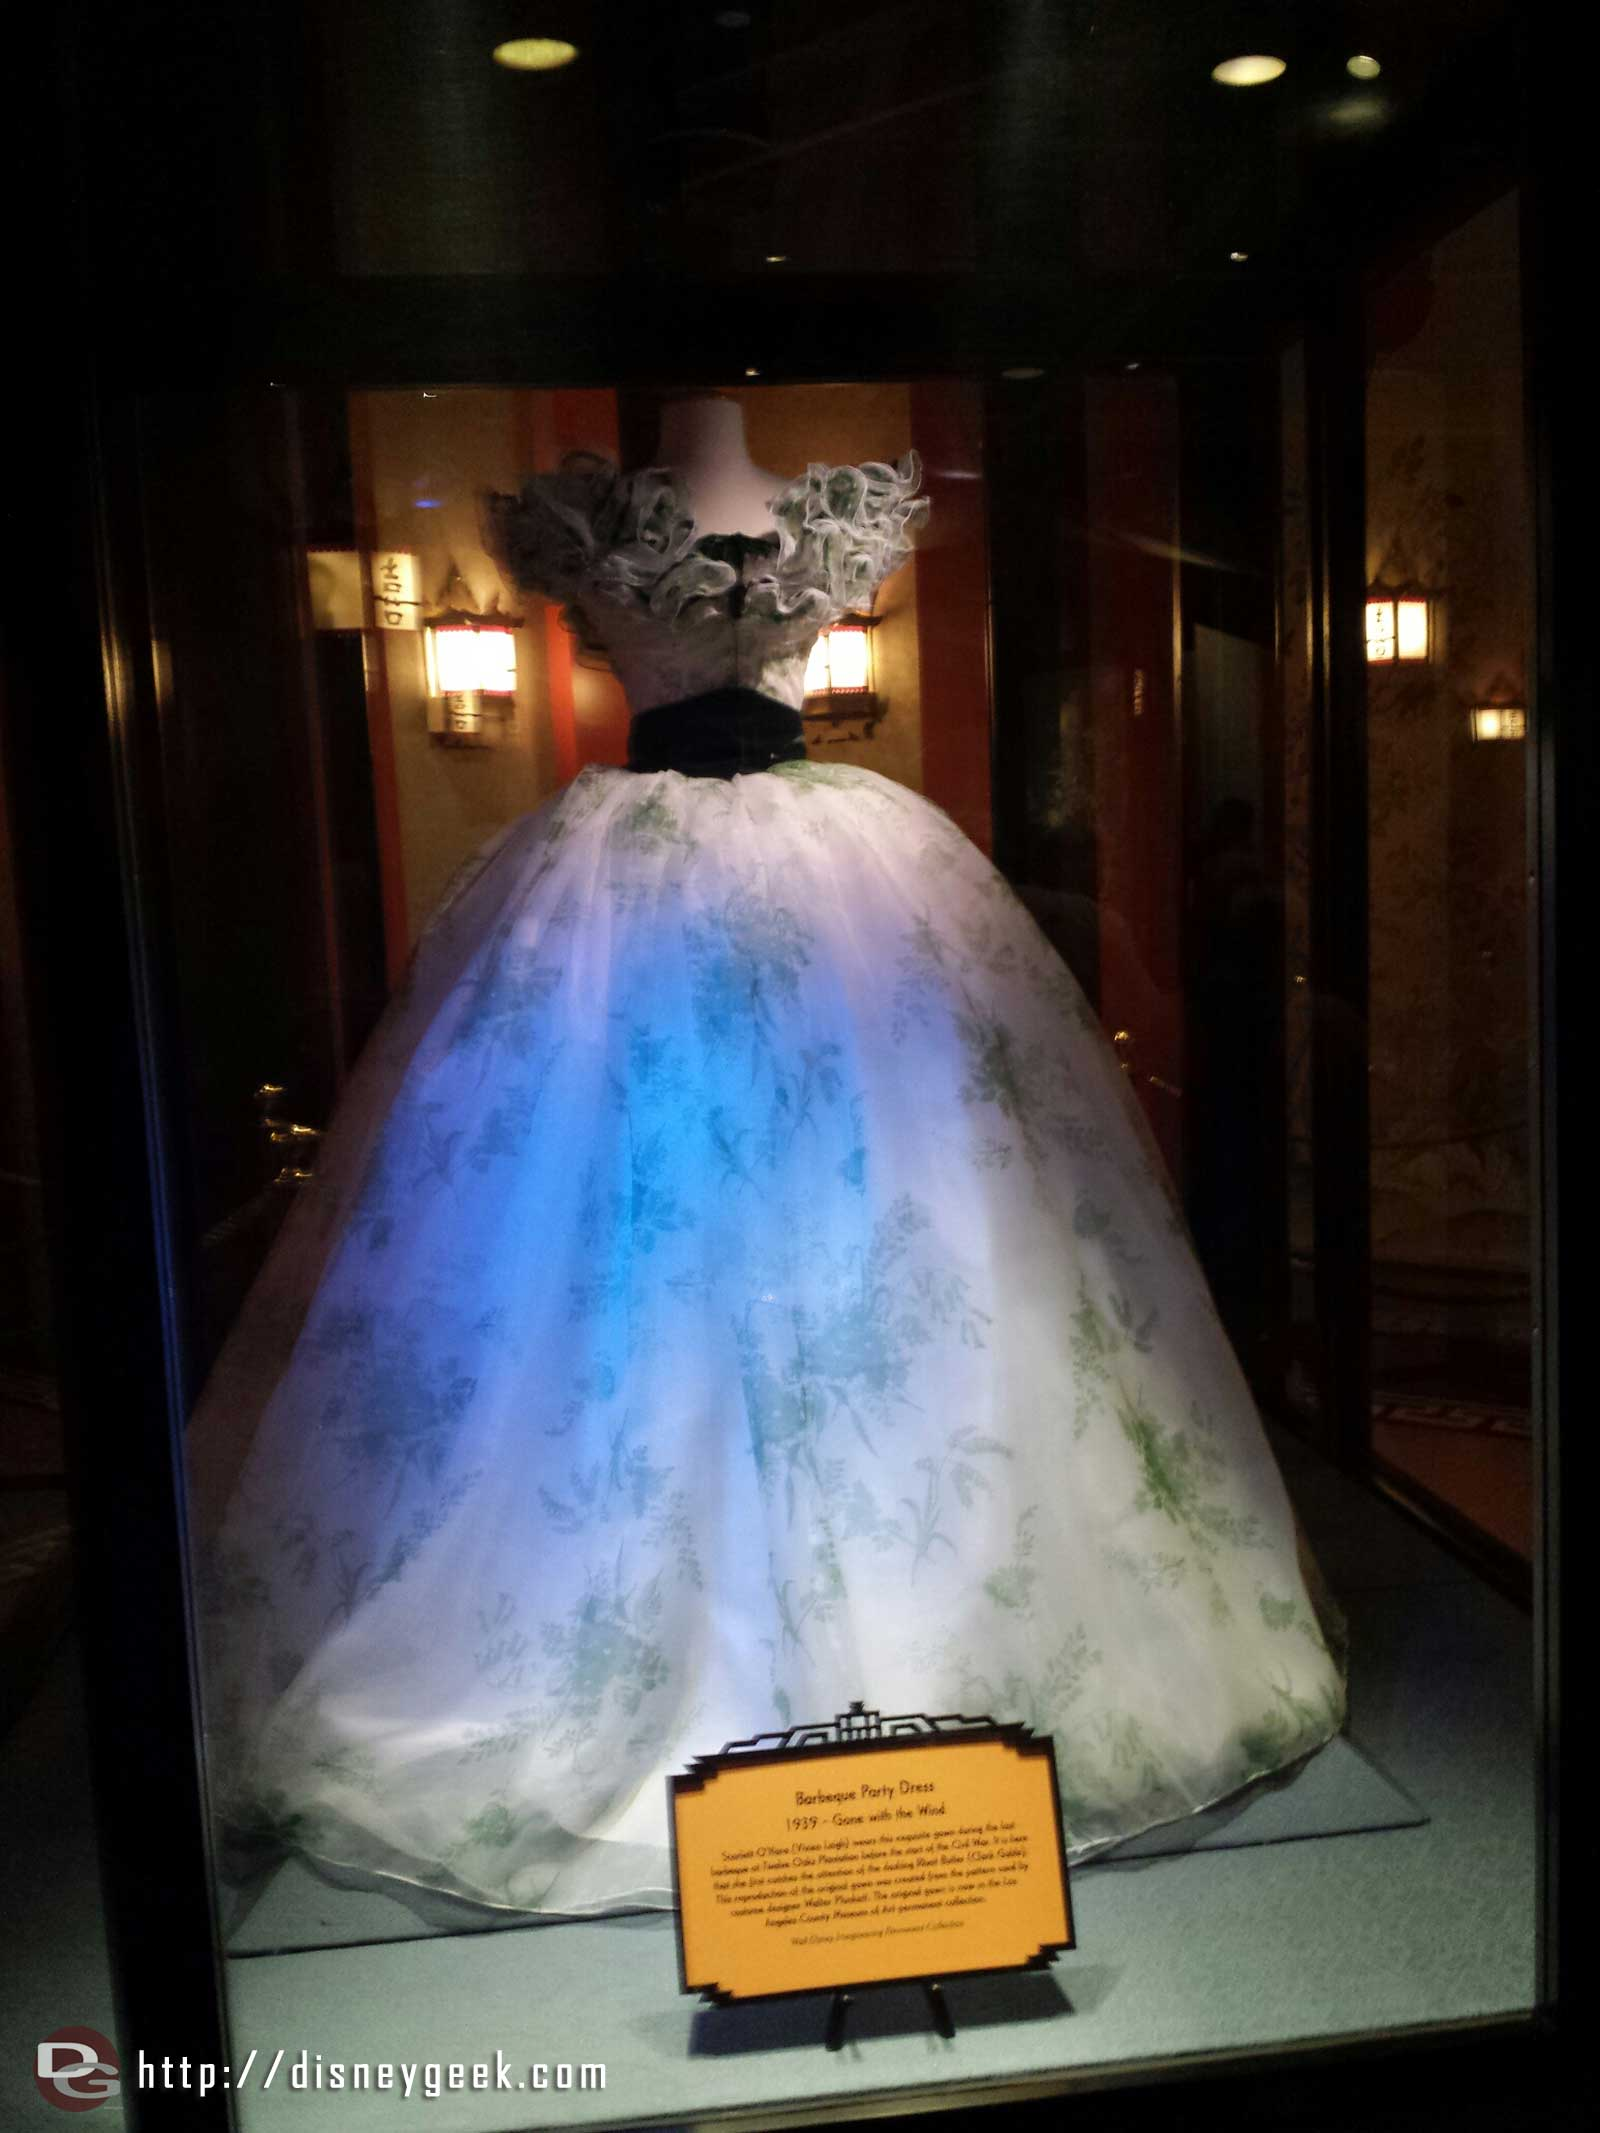 A dress from Gone With the Wind in the queue of the Great Movie Ride – Disney's Hollywood Studios